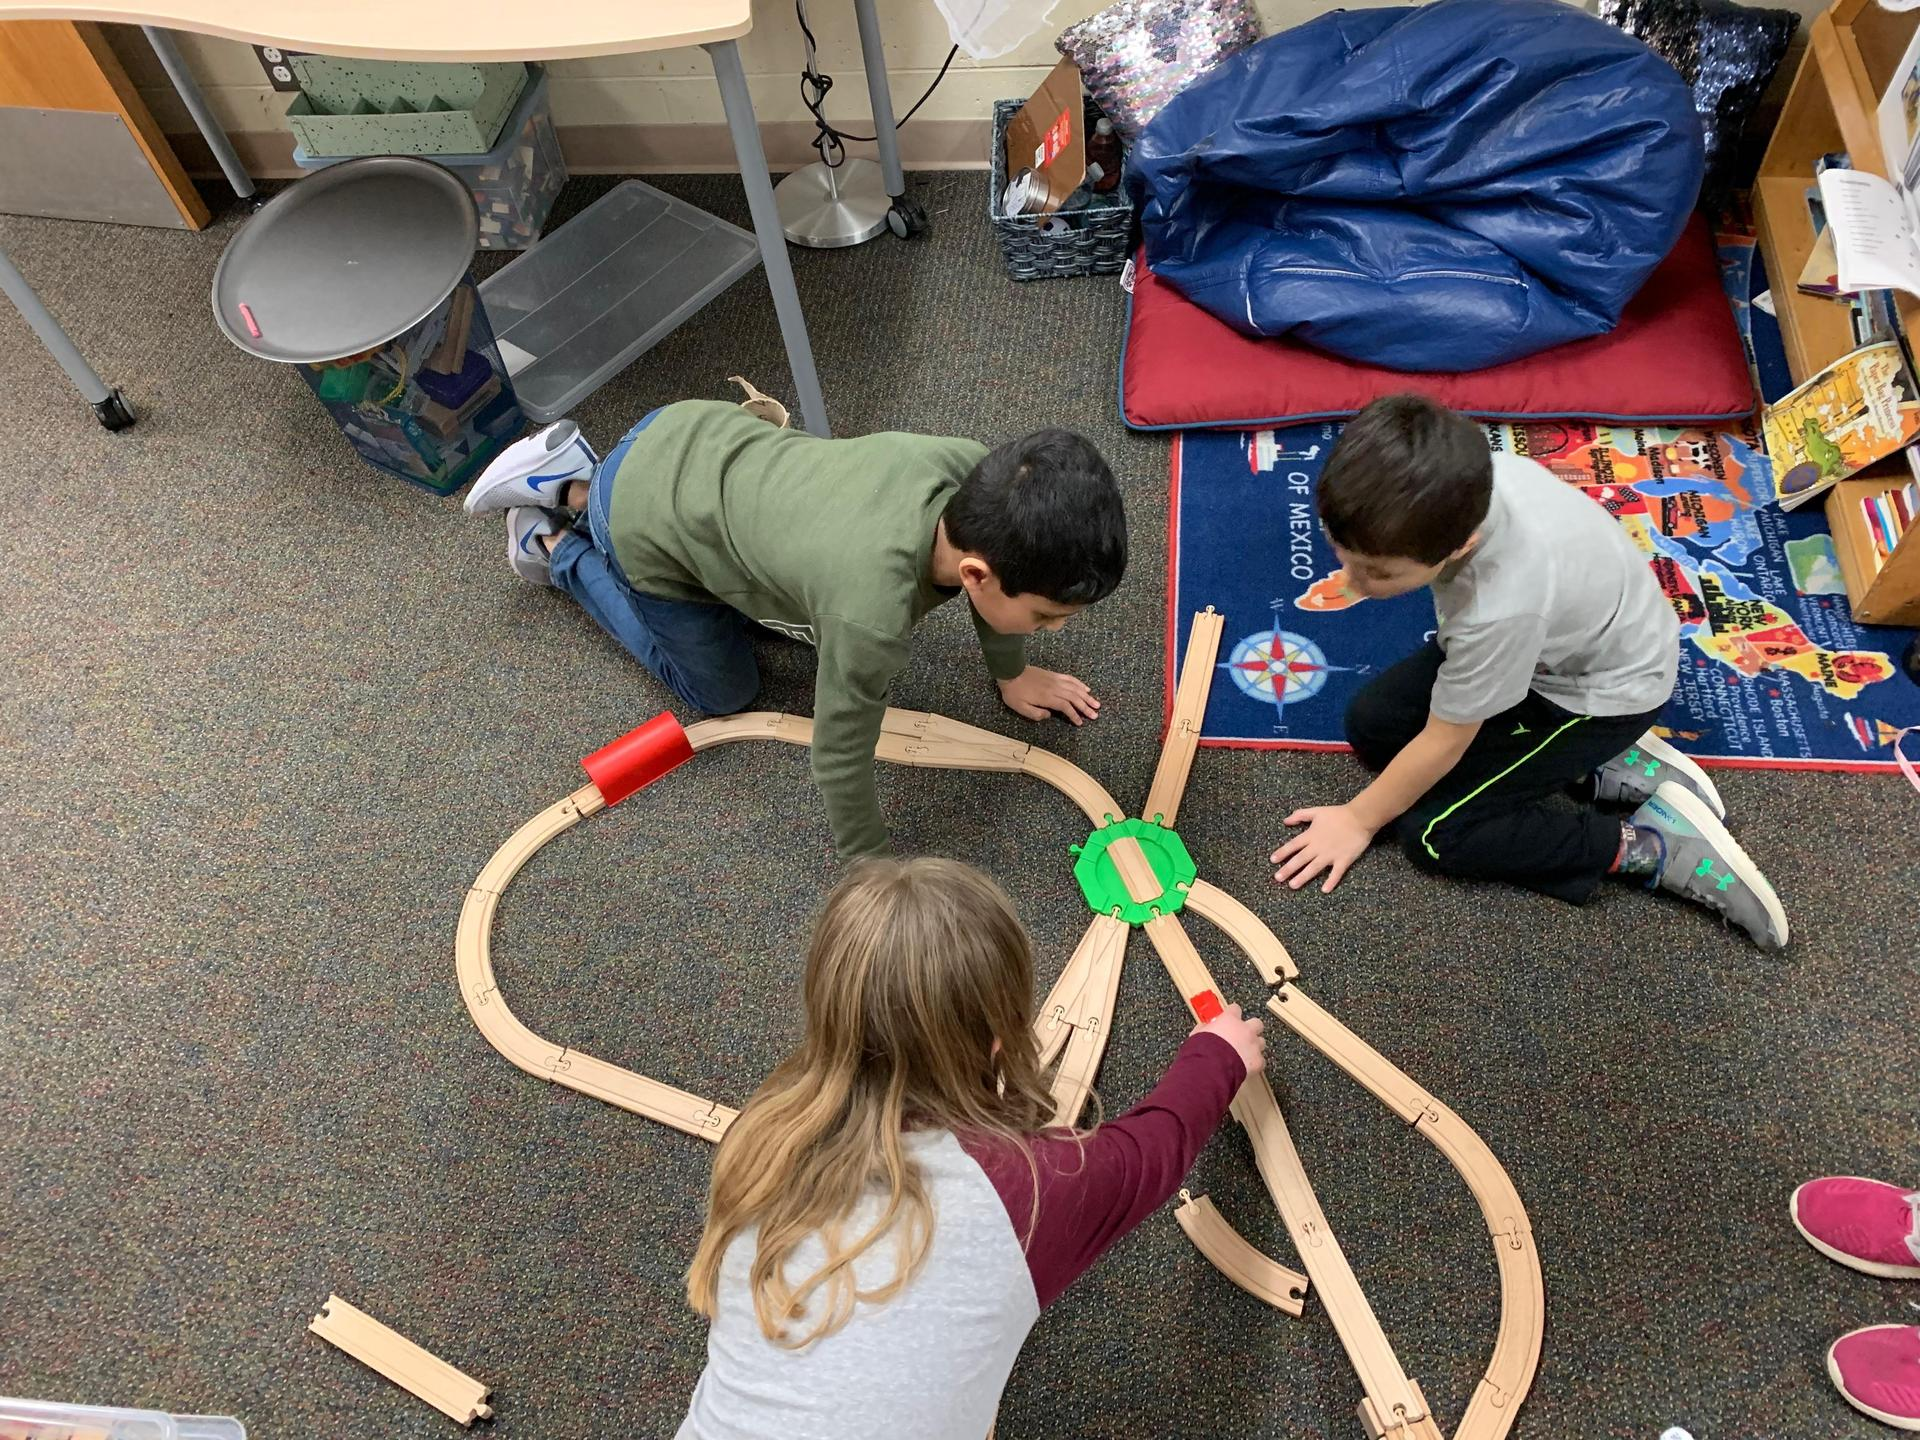 Building track